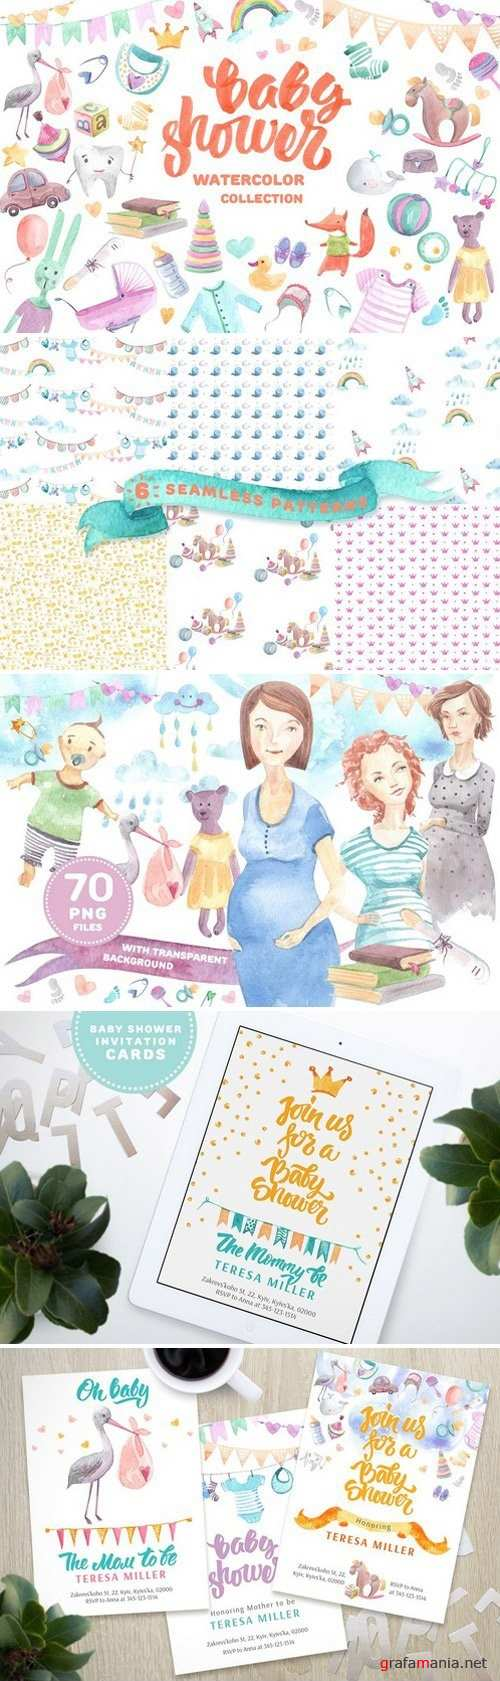 Baby shower watercolor collection 1872541